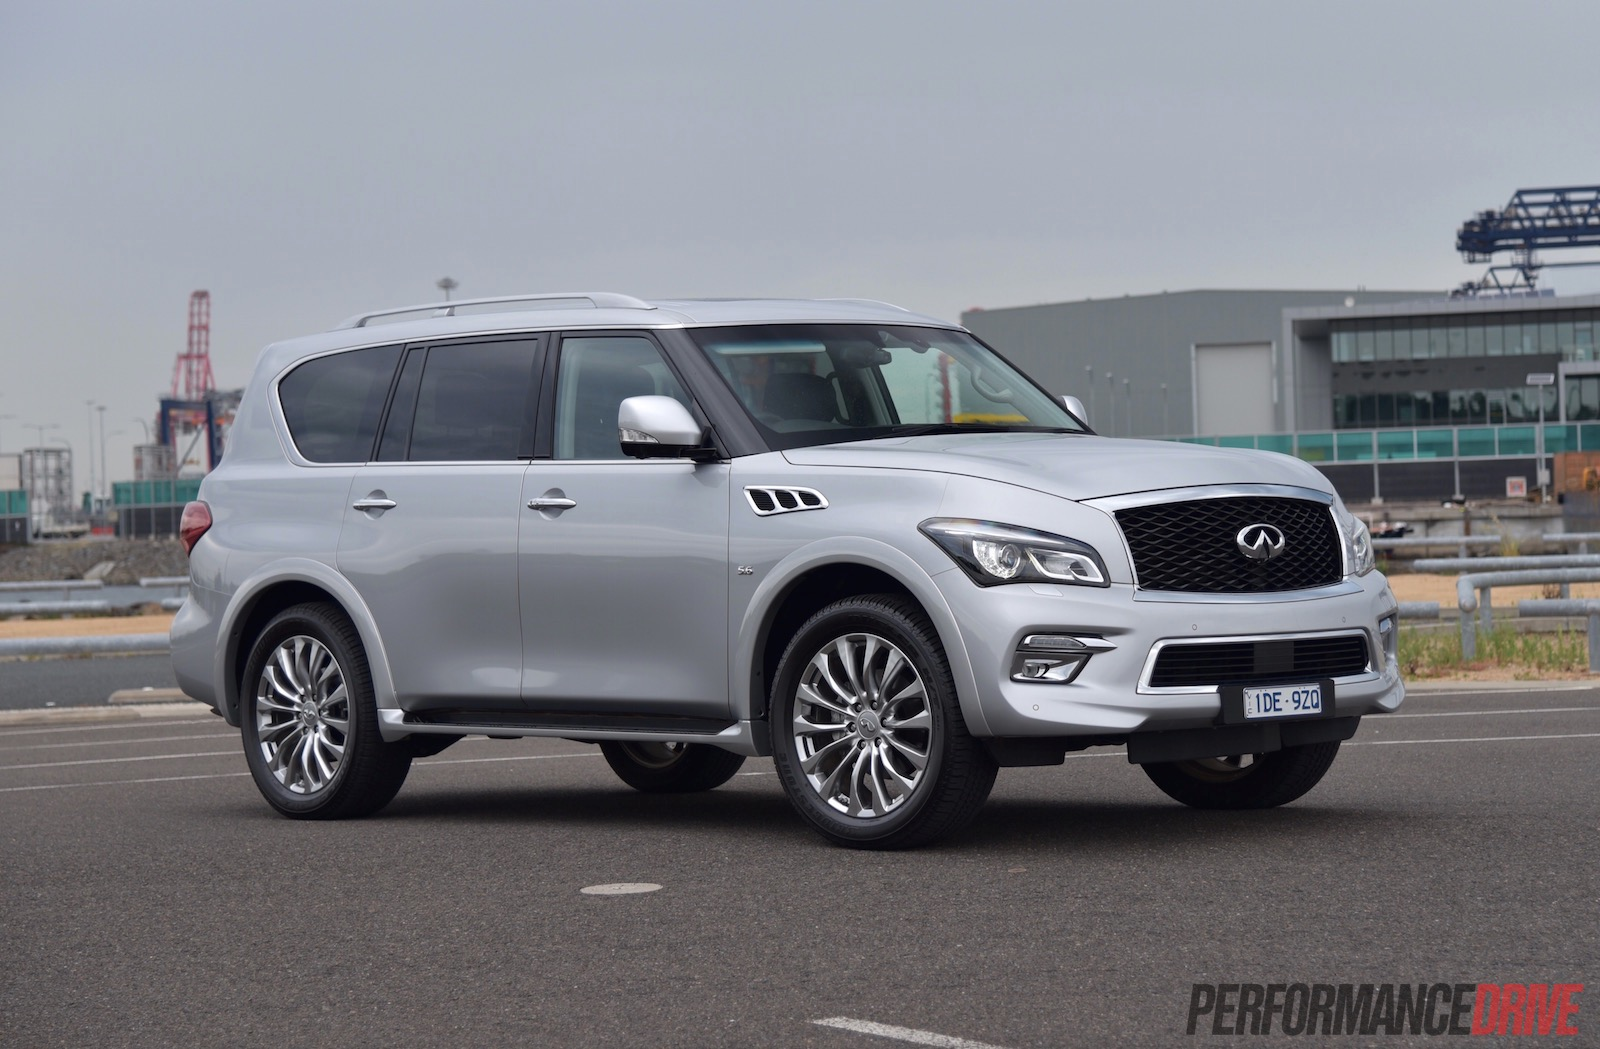 2015 infiniti qx80 review video performancedrive. Black Bedroom Furniture Sets. Home Design Ideas